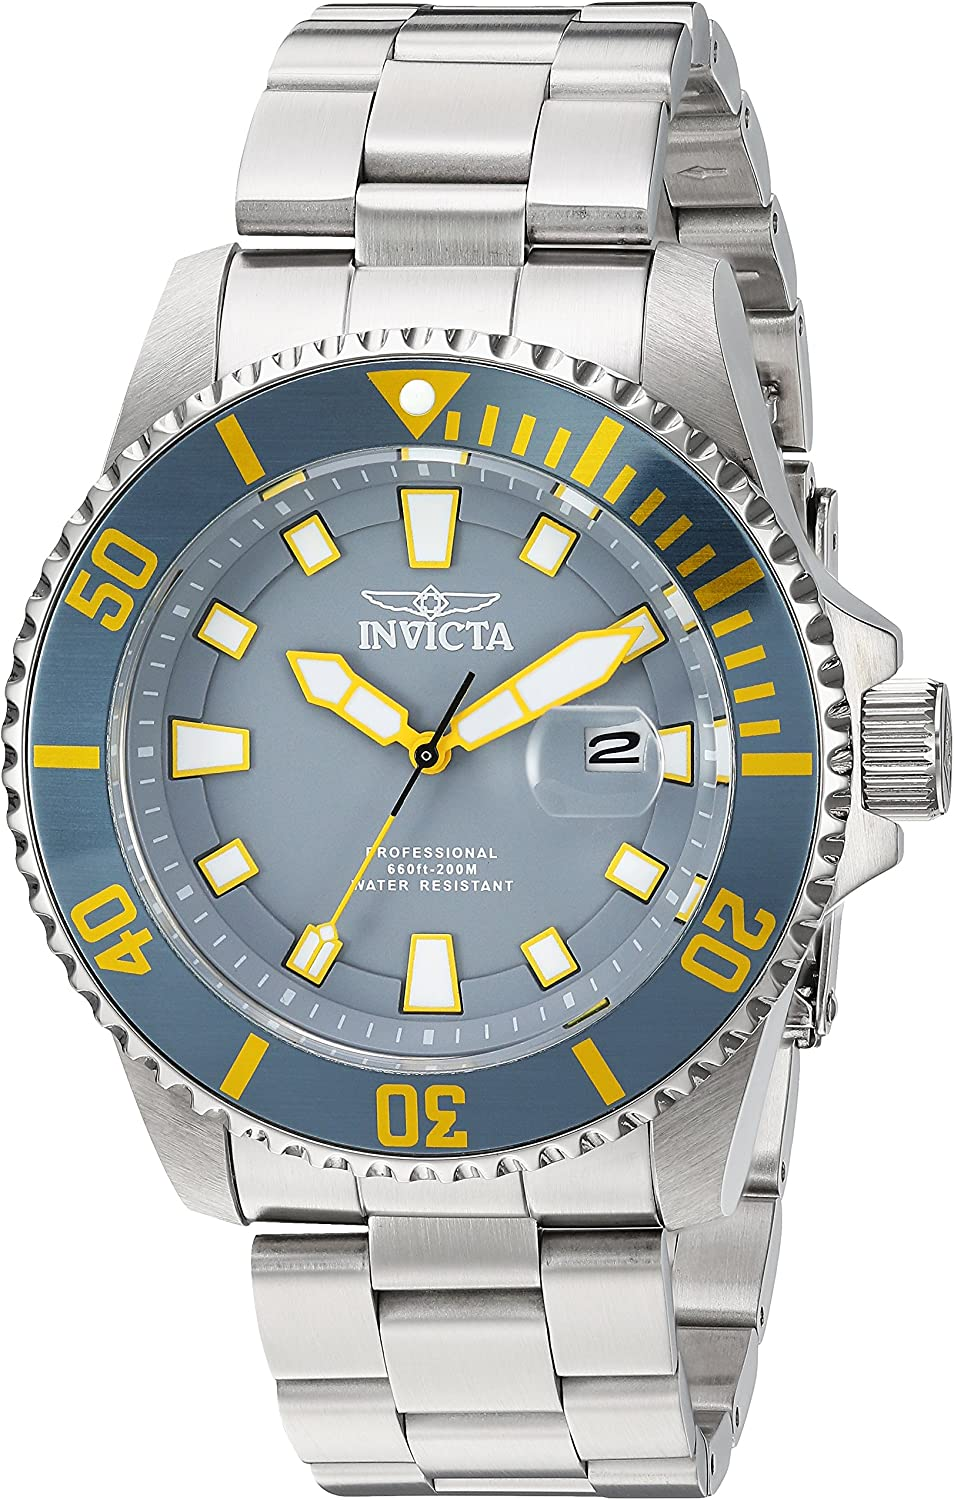 Invicta Men's Pro Diver Quartz Watch with Stainless-Steel Strap, Silver, 22 (Model: 90295)